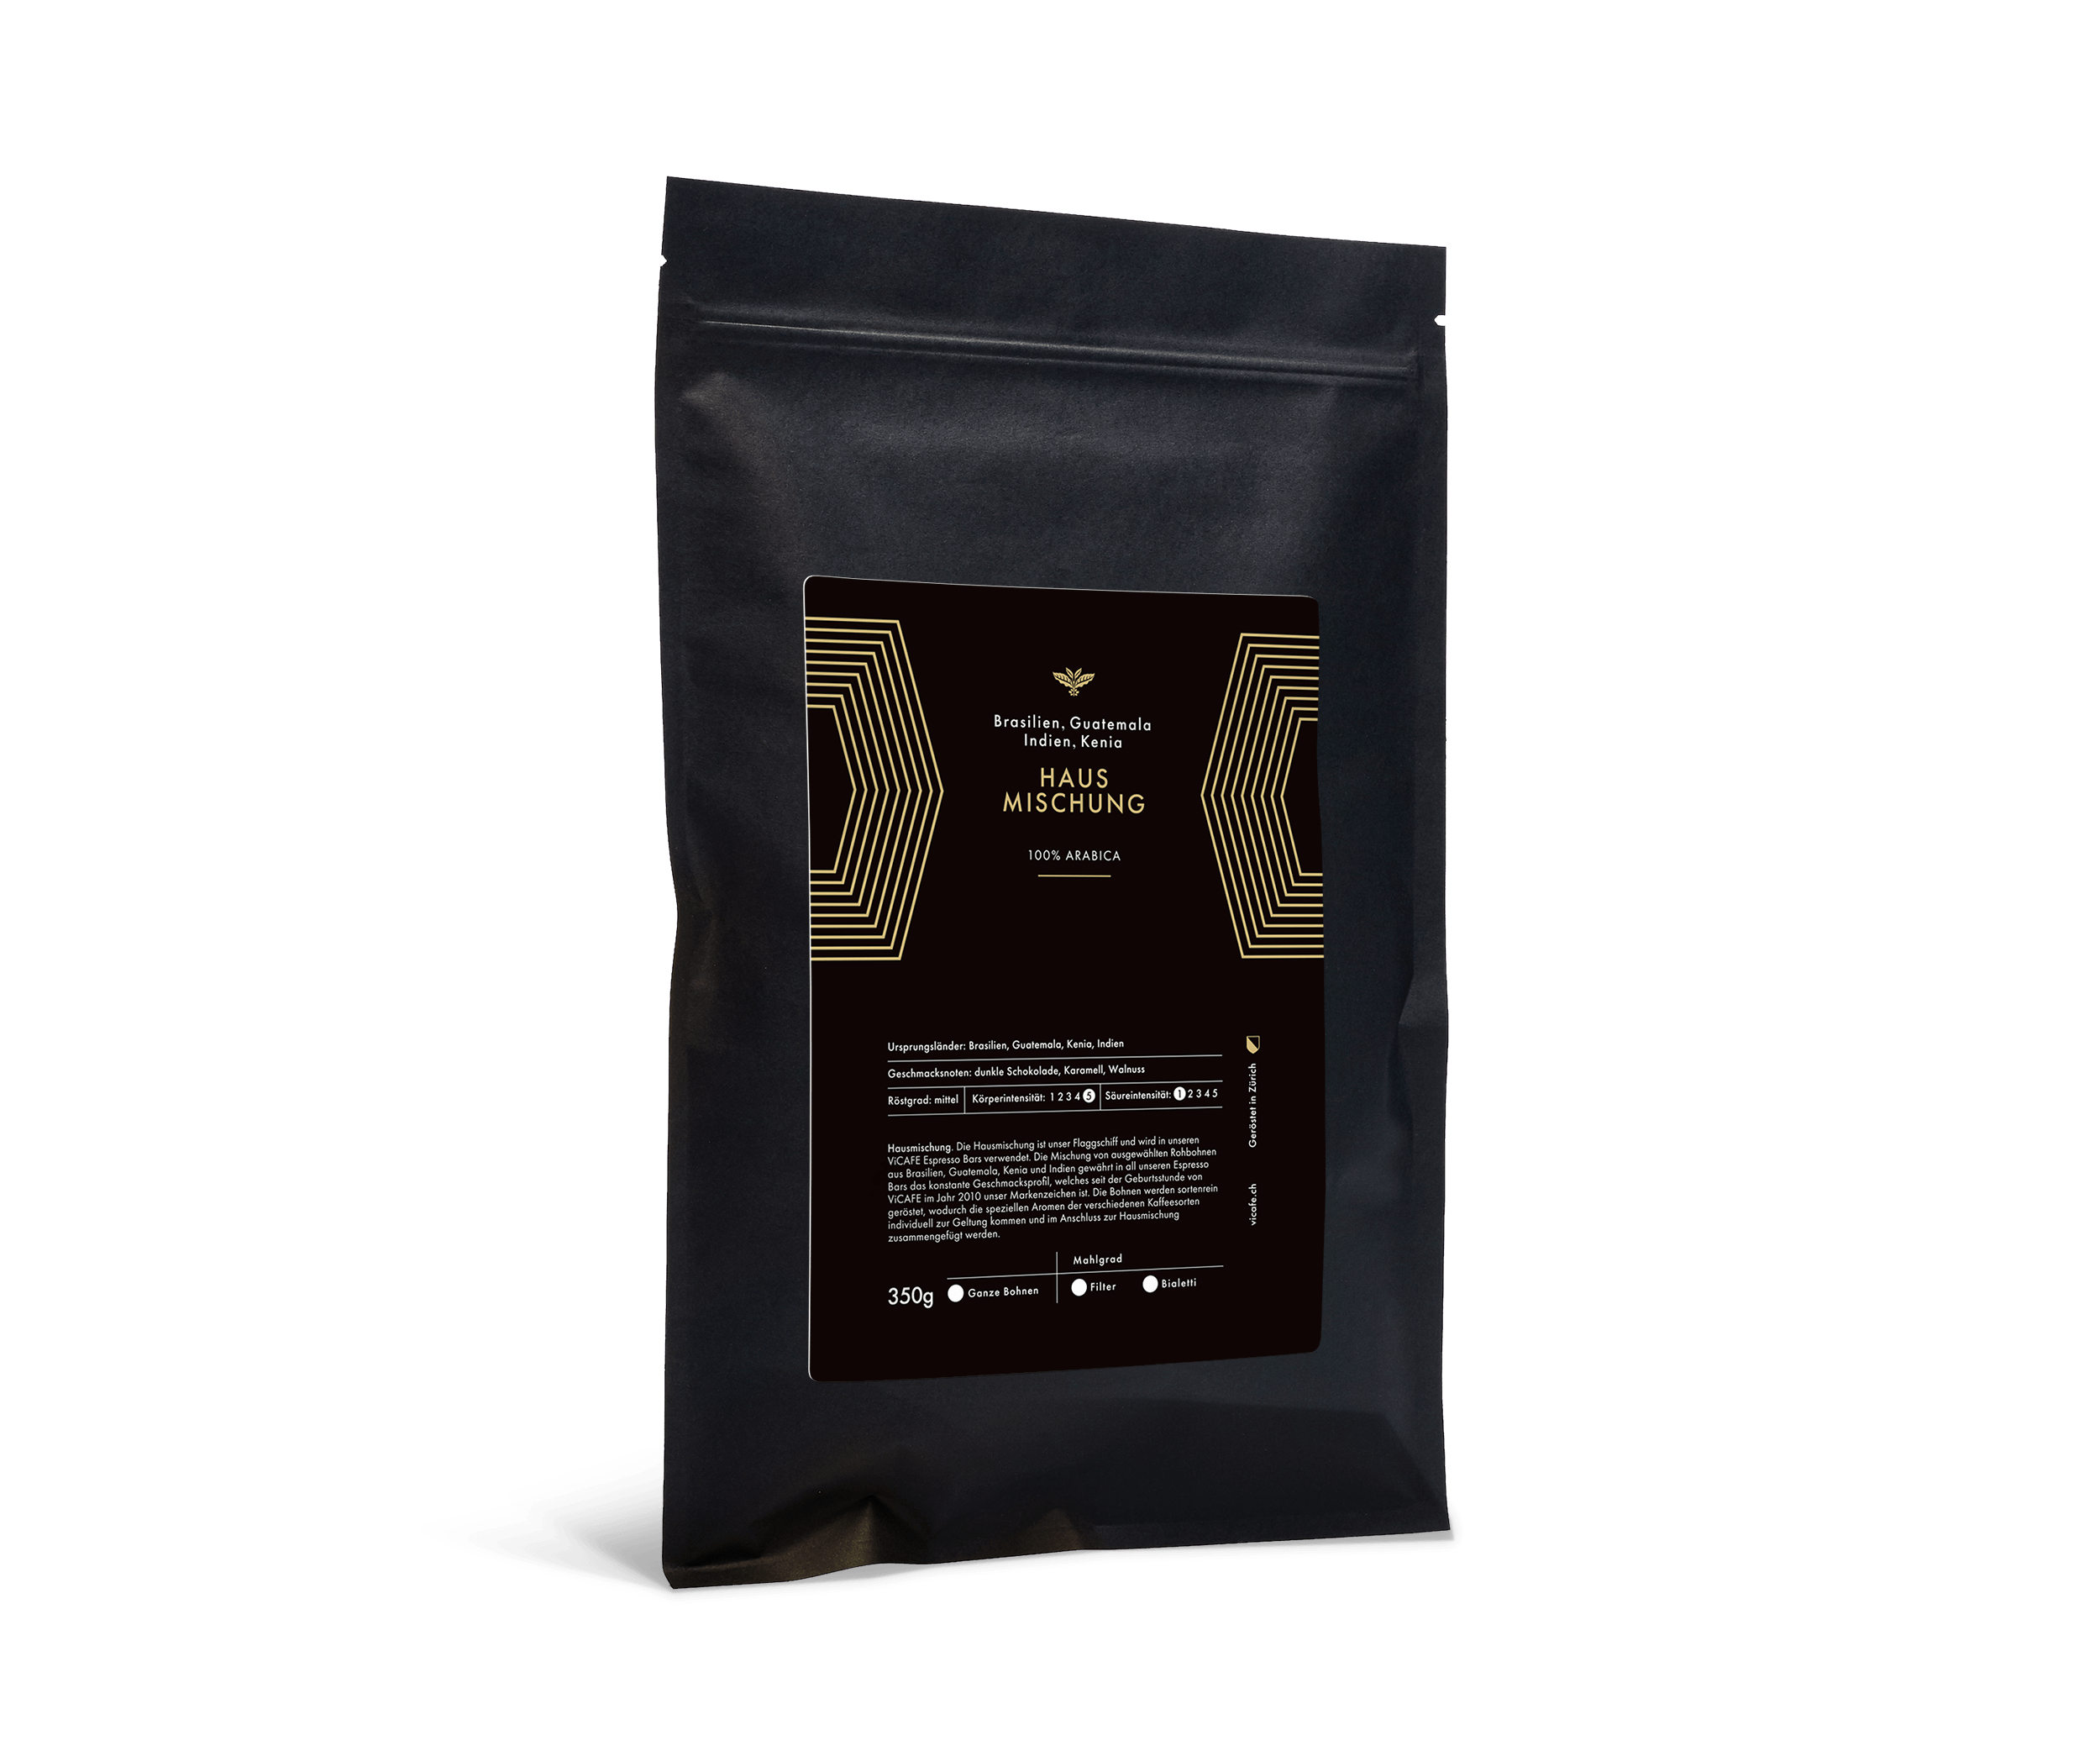 ViCAFE coffee subscription hausmischung coffee product picture